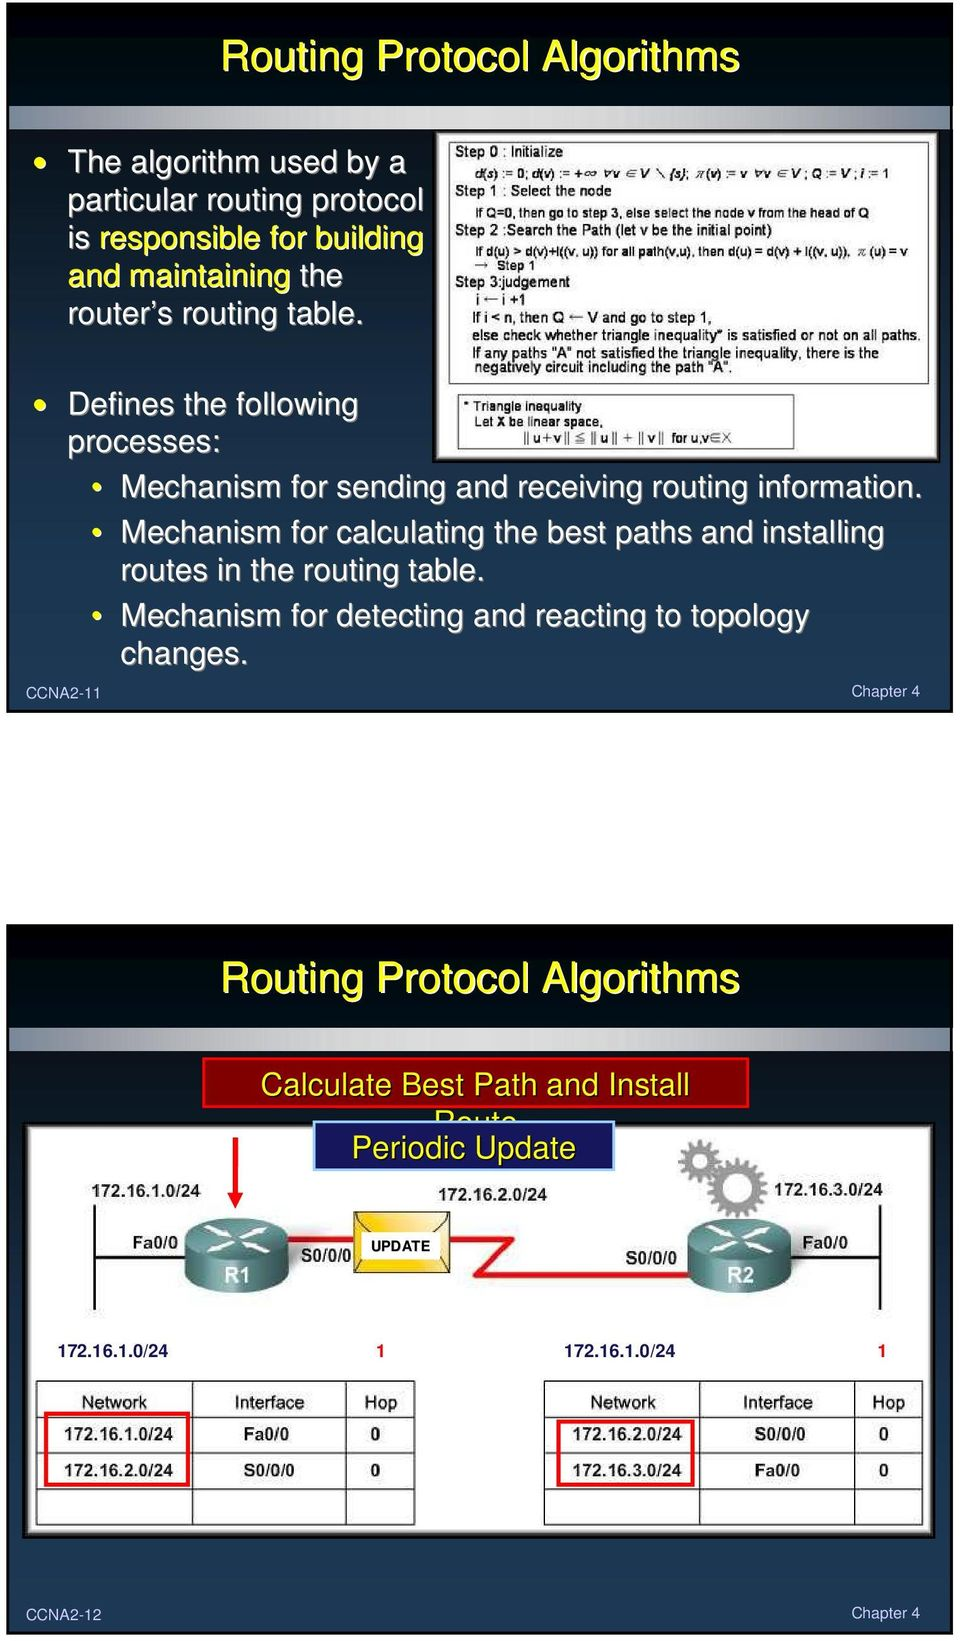 Mechanism for calculating the best paths and installing routes in the routing table.